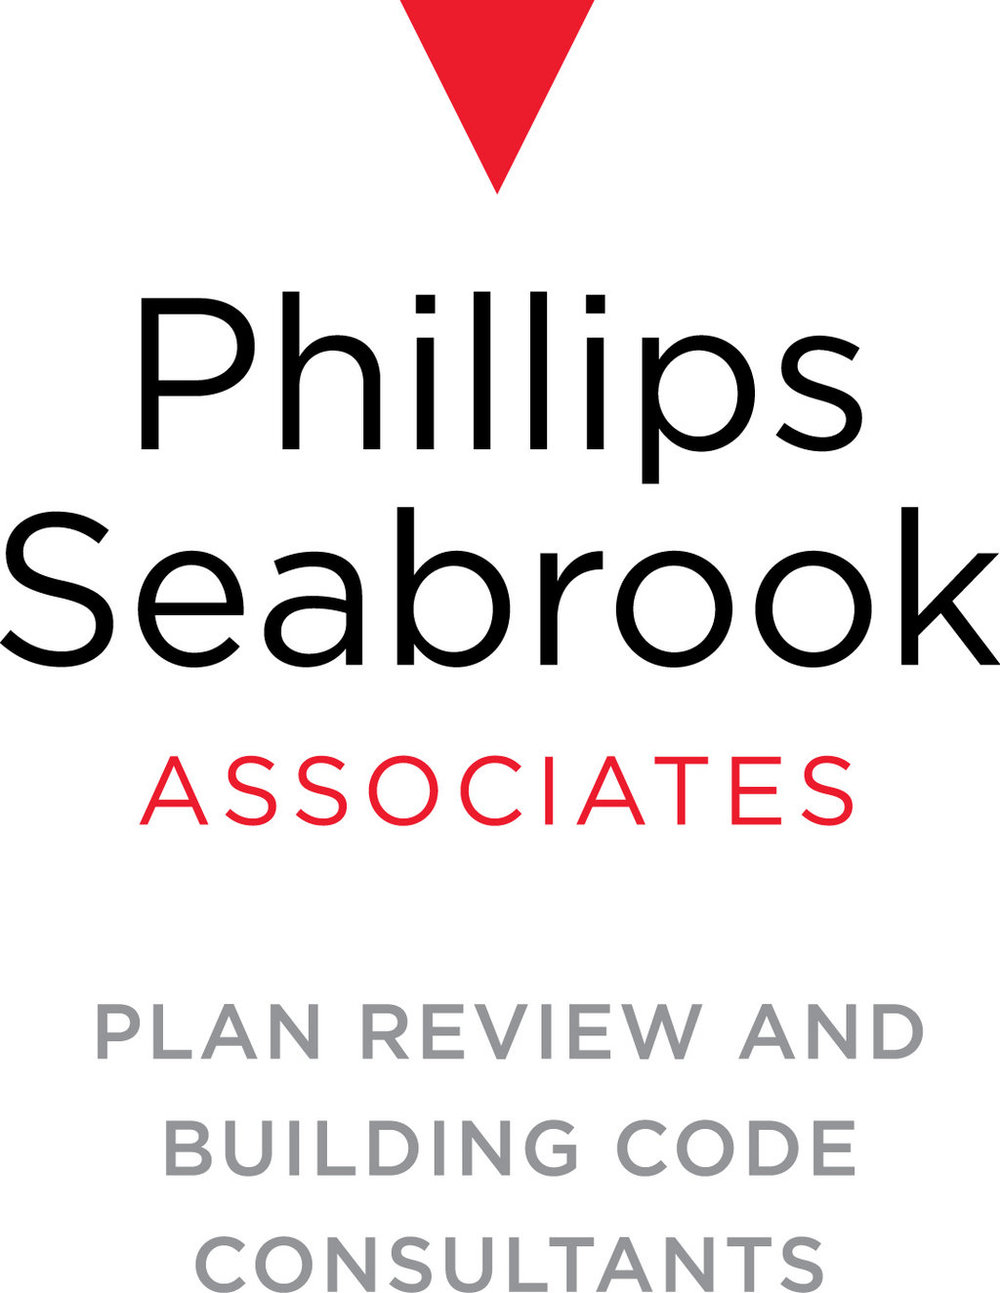 Phillips Seabrook.jpg